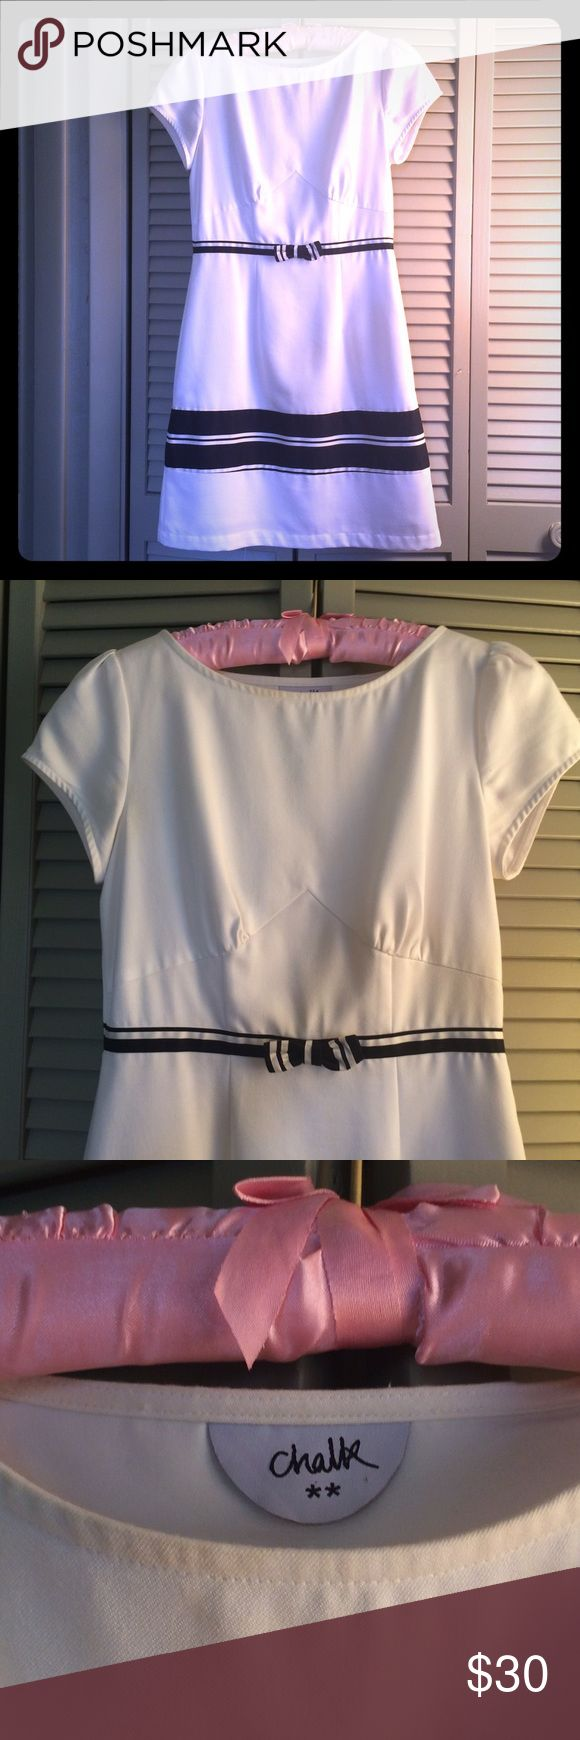 CHALK (Singapore boutique) White Dress With Bow CHALK is a Singapore-based boutique. This dress runs size 2. I am a 4 and I can't zip it up all the way (side zip). Made for petites!  Nautical-ish with a grosgrain ribbon along the waist. Great to accentuate your tan. Slight discoloration on the neckline and armpit and a tiny spot by the bow, all pictured. Dresses Mini